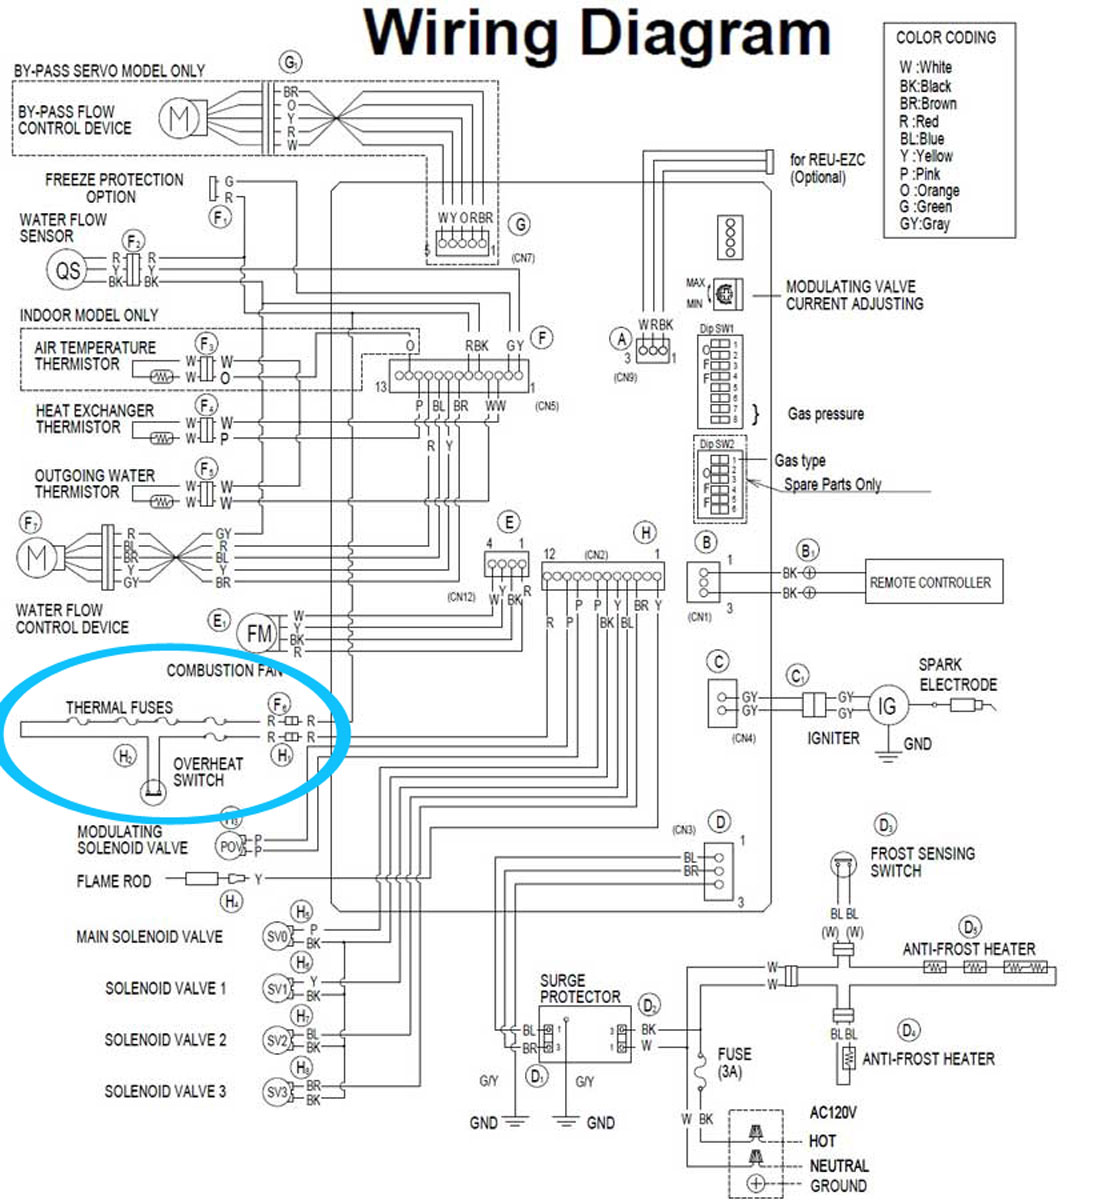 Rheem Rte 18 Wiring Diagram : 27 Wiring Diagram Images